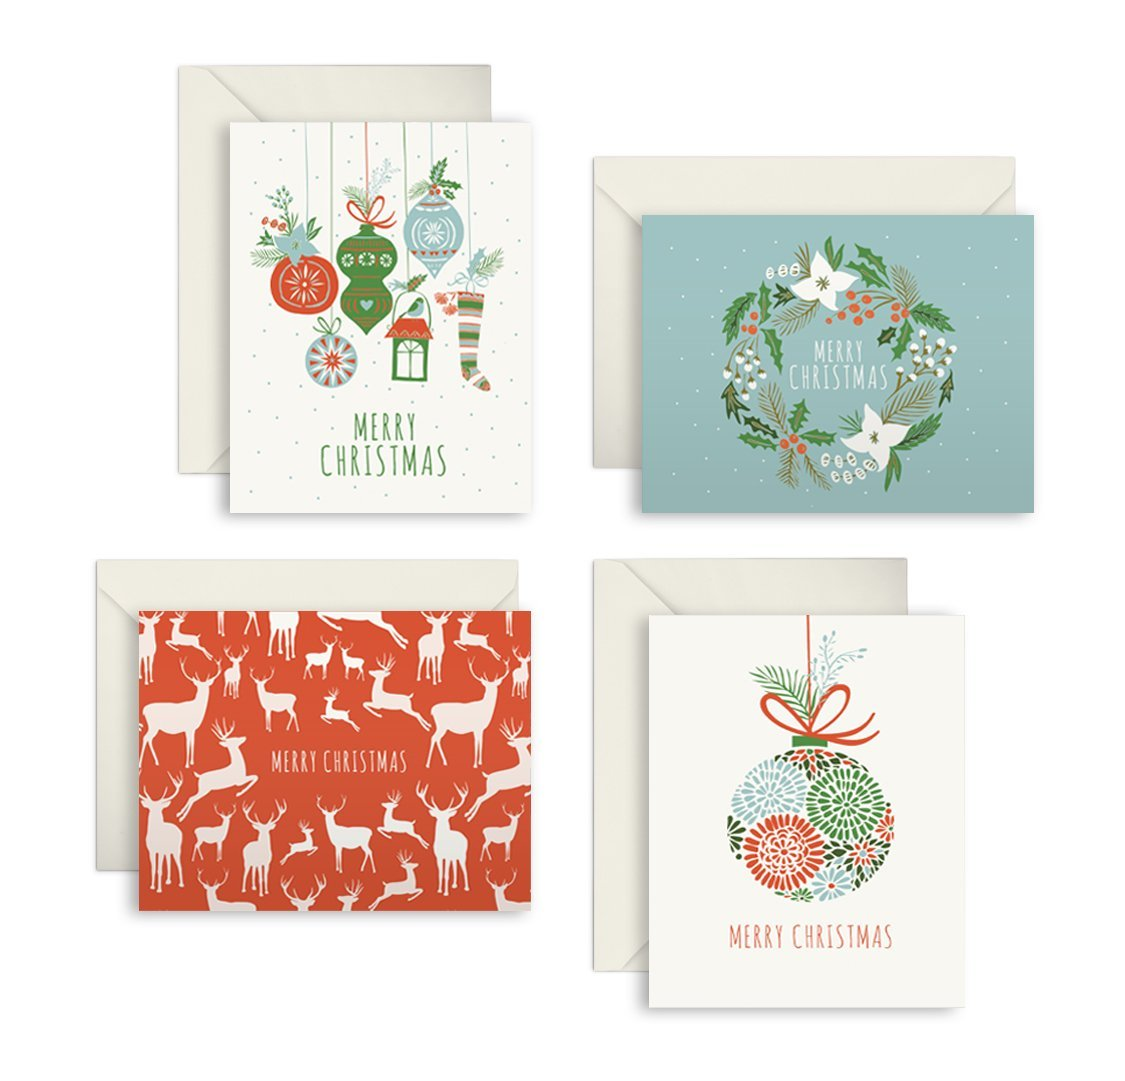 Cheap Unique Corporate Holiday Cards Find Unique Corporate Holiday